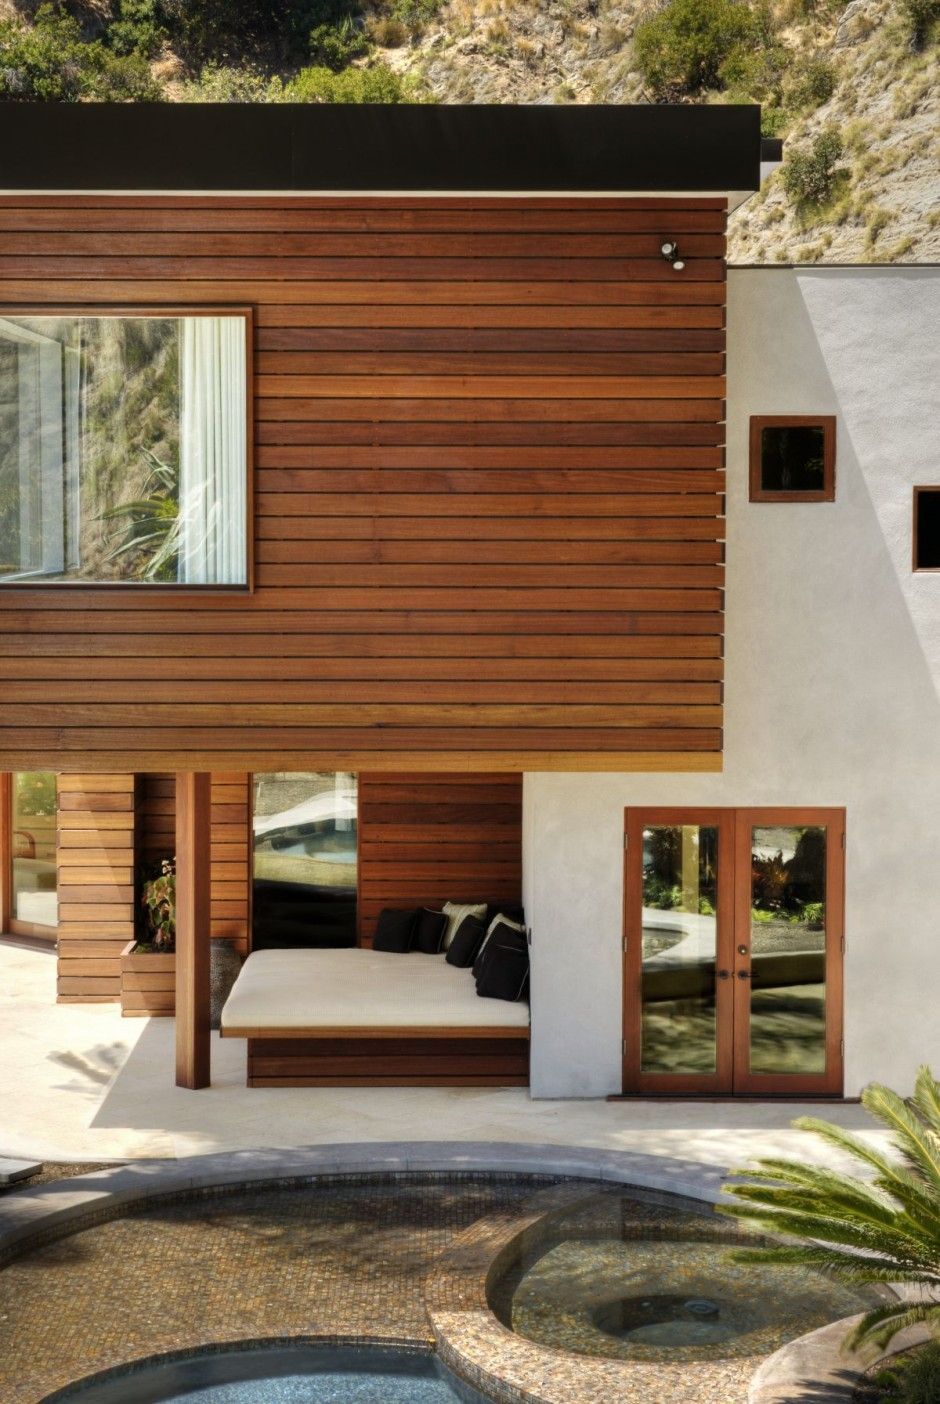 Exterior Wood Oil | Modern architecture, Architecture ...